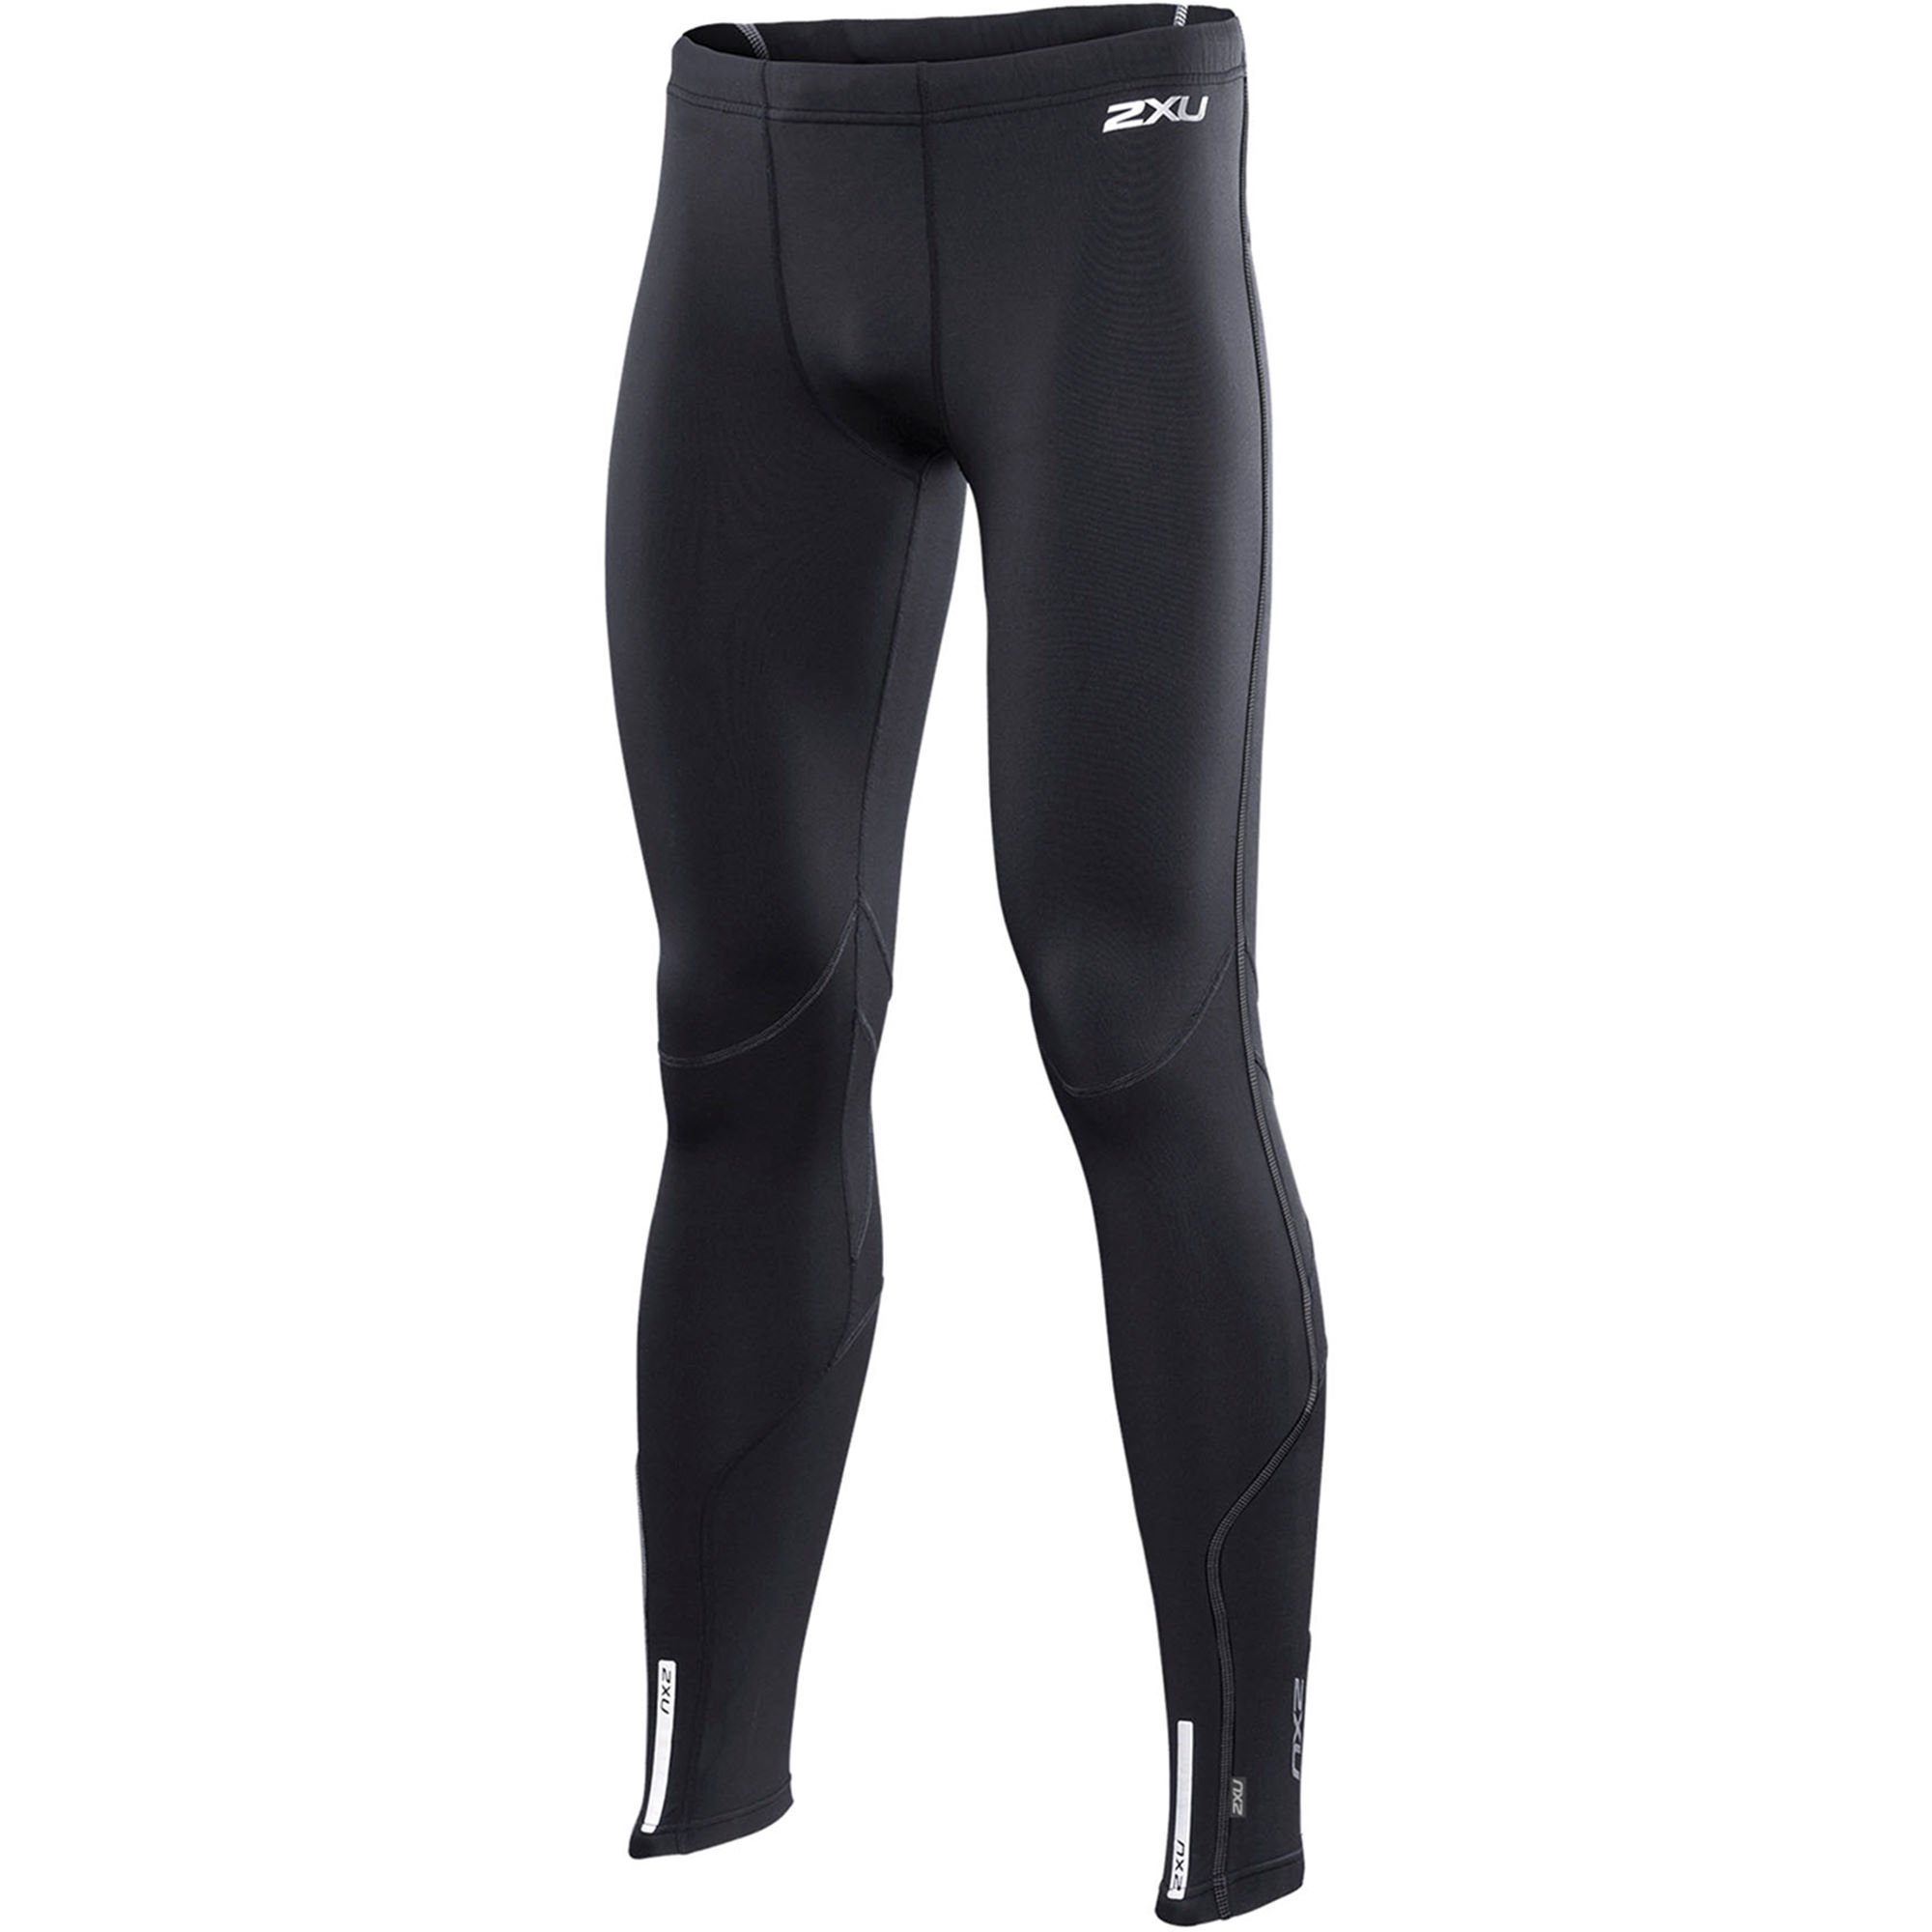 running tights gifts for runners men simplyfitandclean